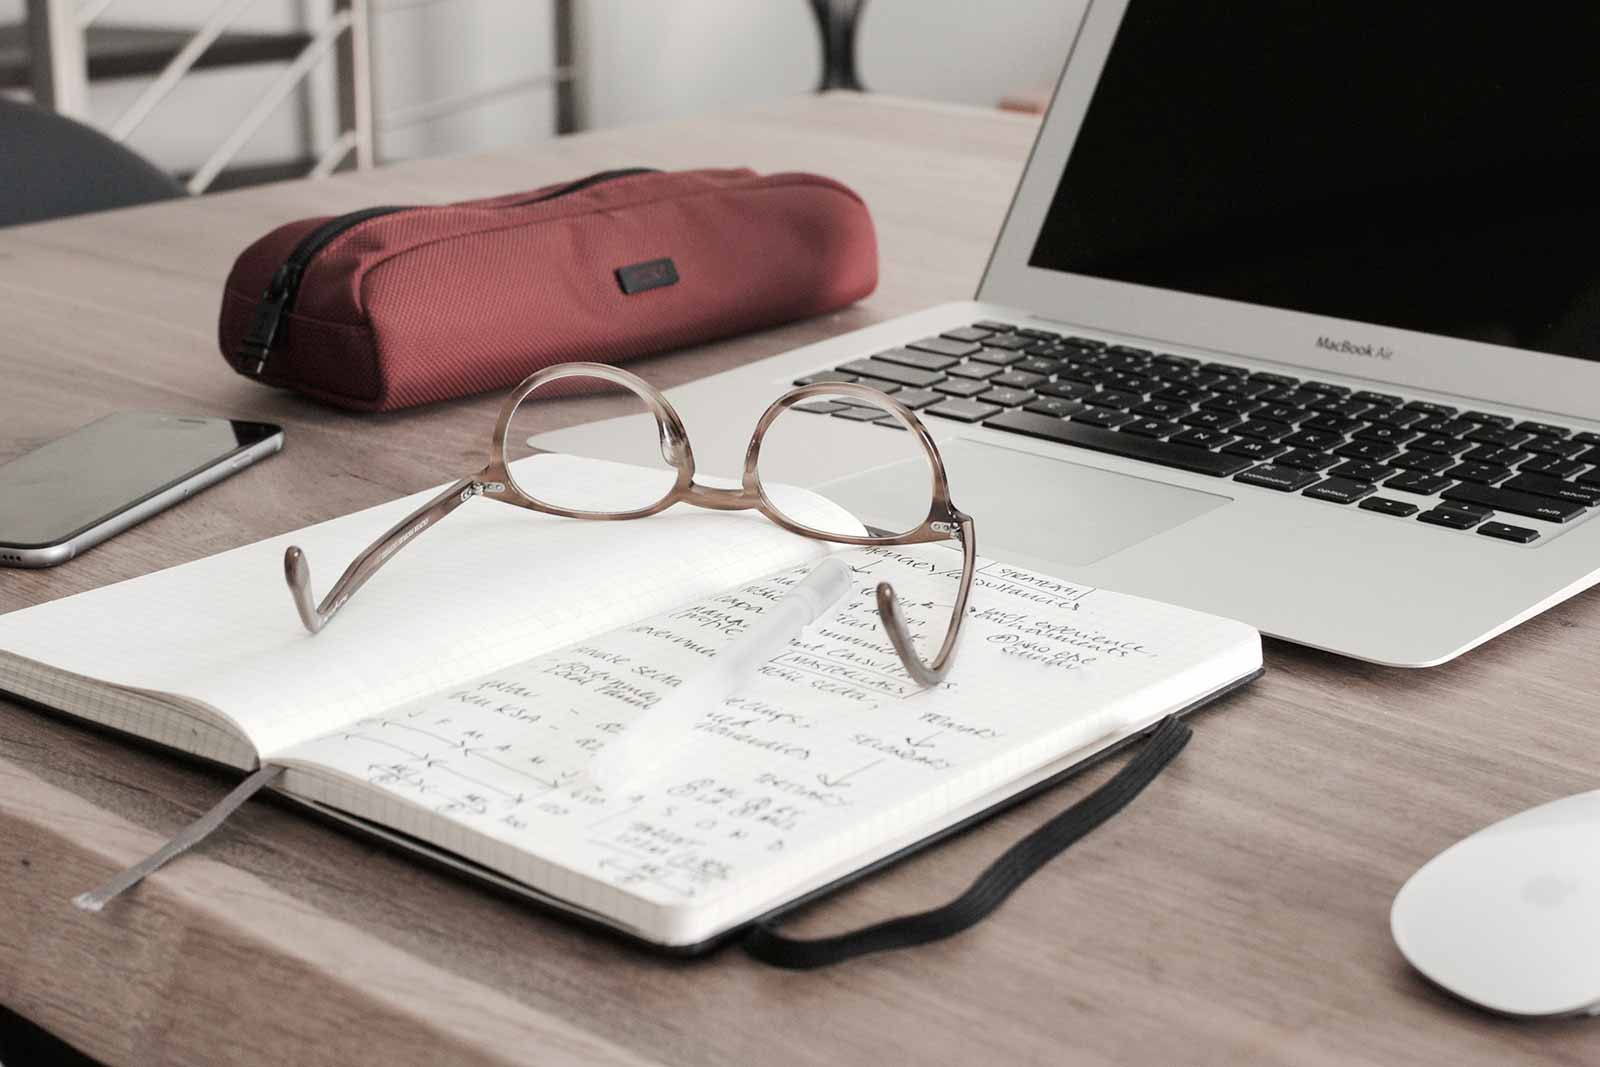 Notebook opened with glasses and a laptop